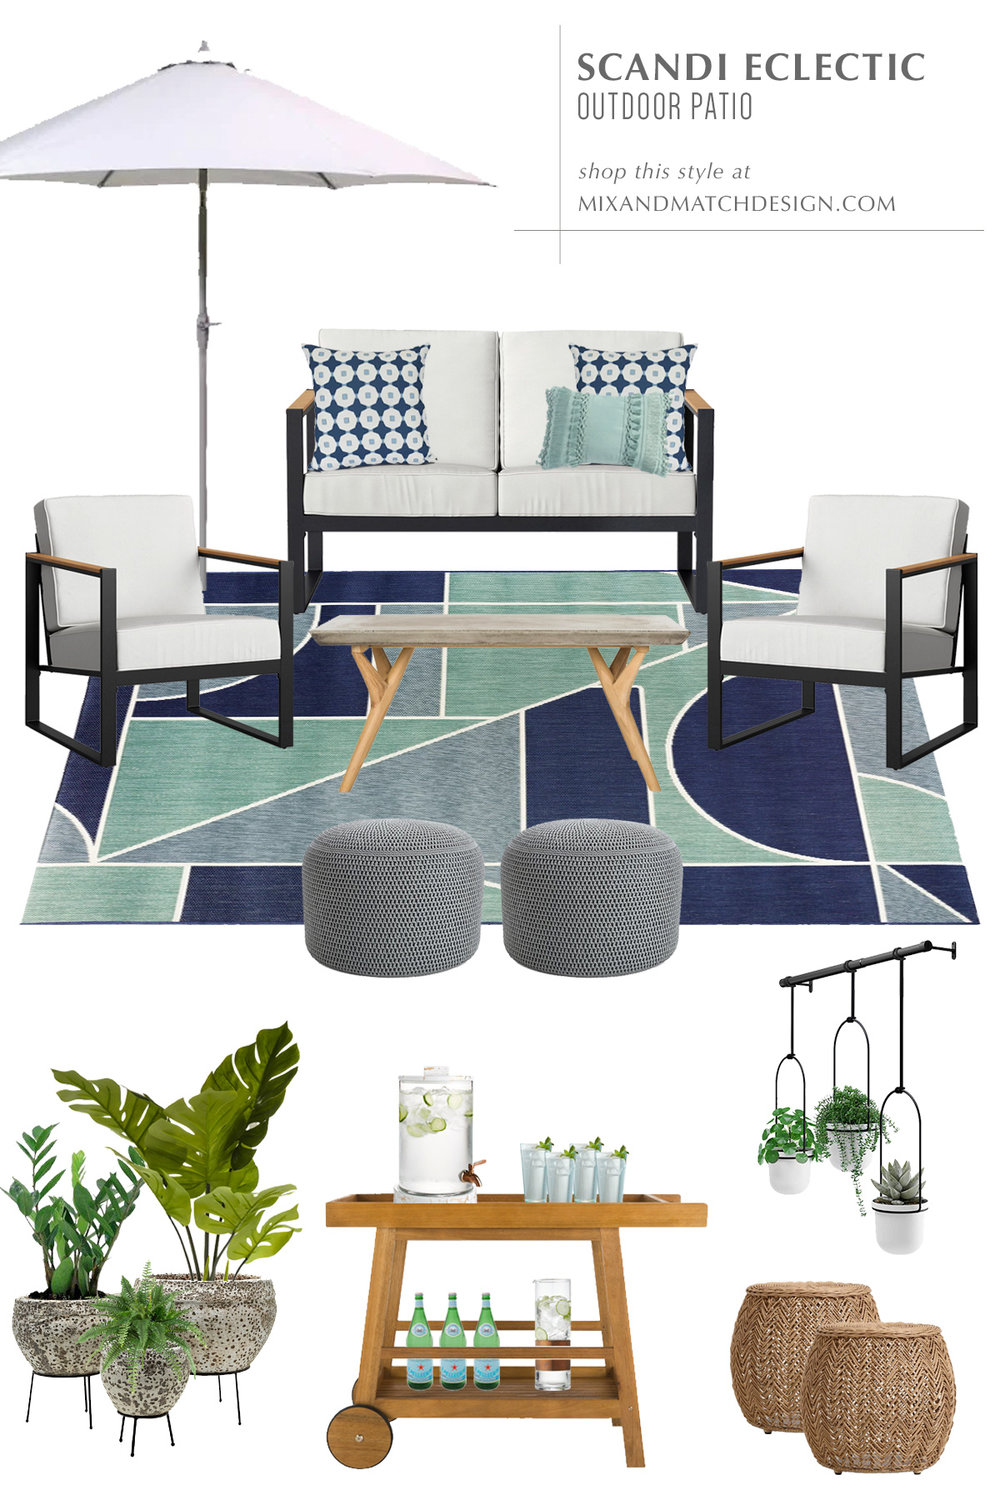 Head over to this post for inspiration on how to design an outdoor space. I've got three patio looks in three different styles for under $3,000 to share with you! This one is the Scandinavian Eclectic outdoor patio design.